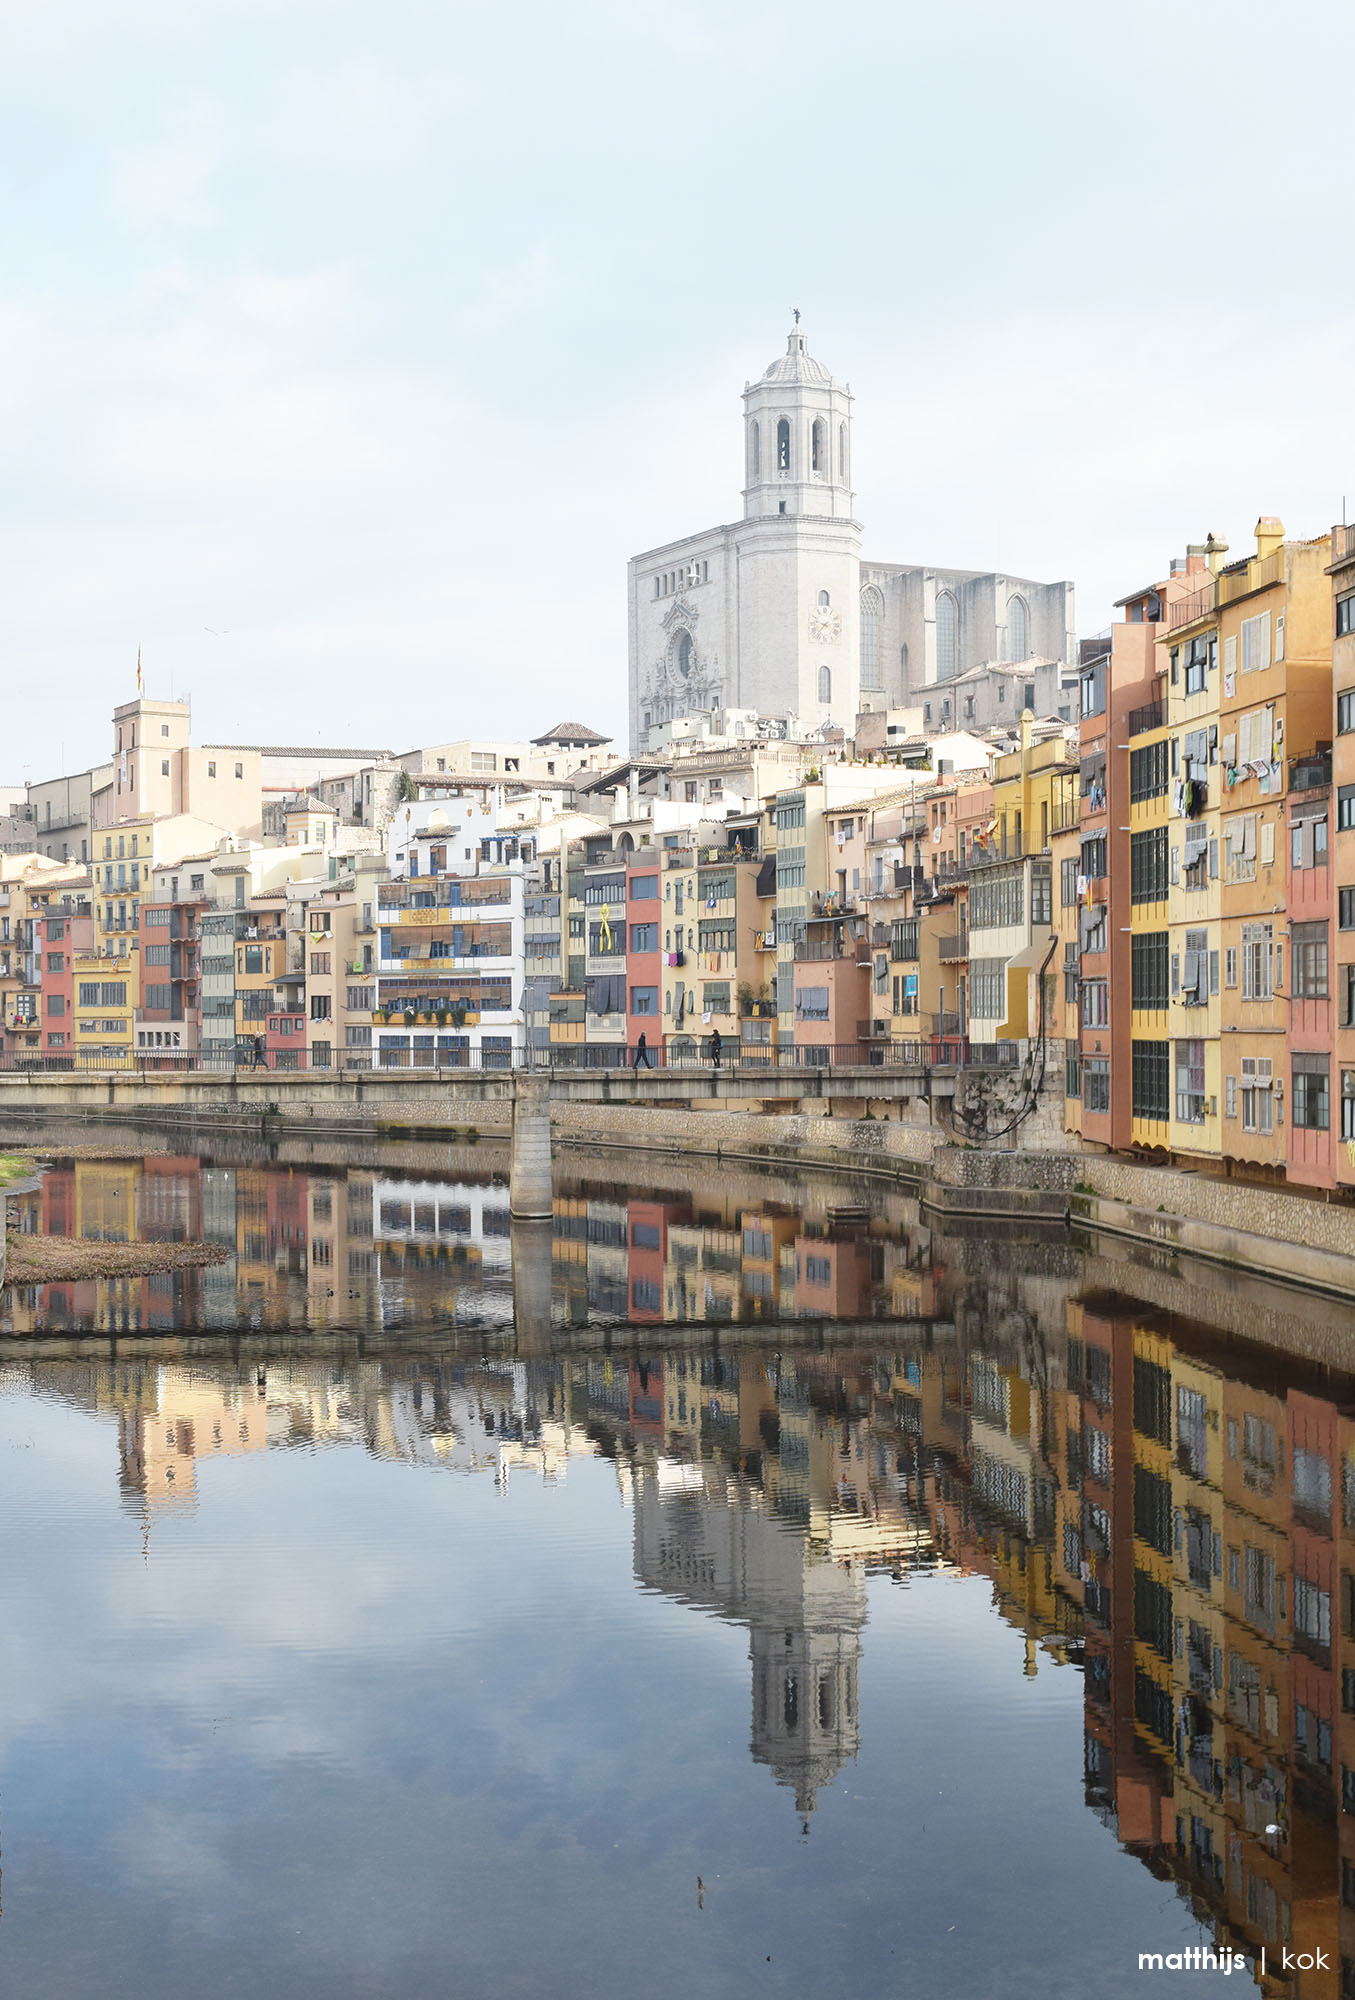 Girona Photo Essay | Photography by Matthijs Kok